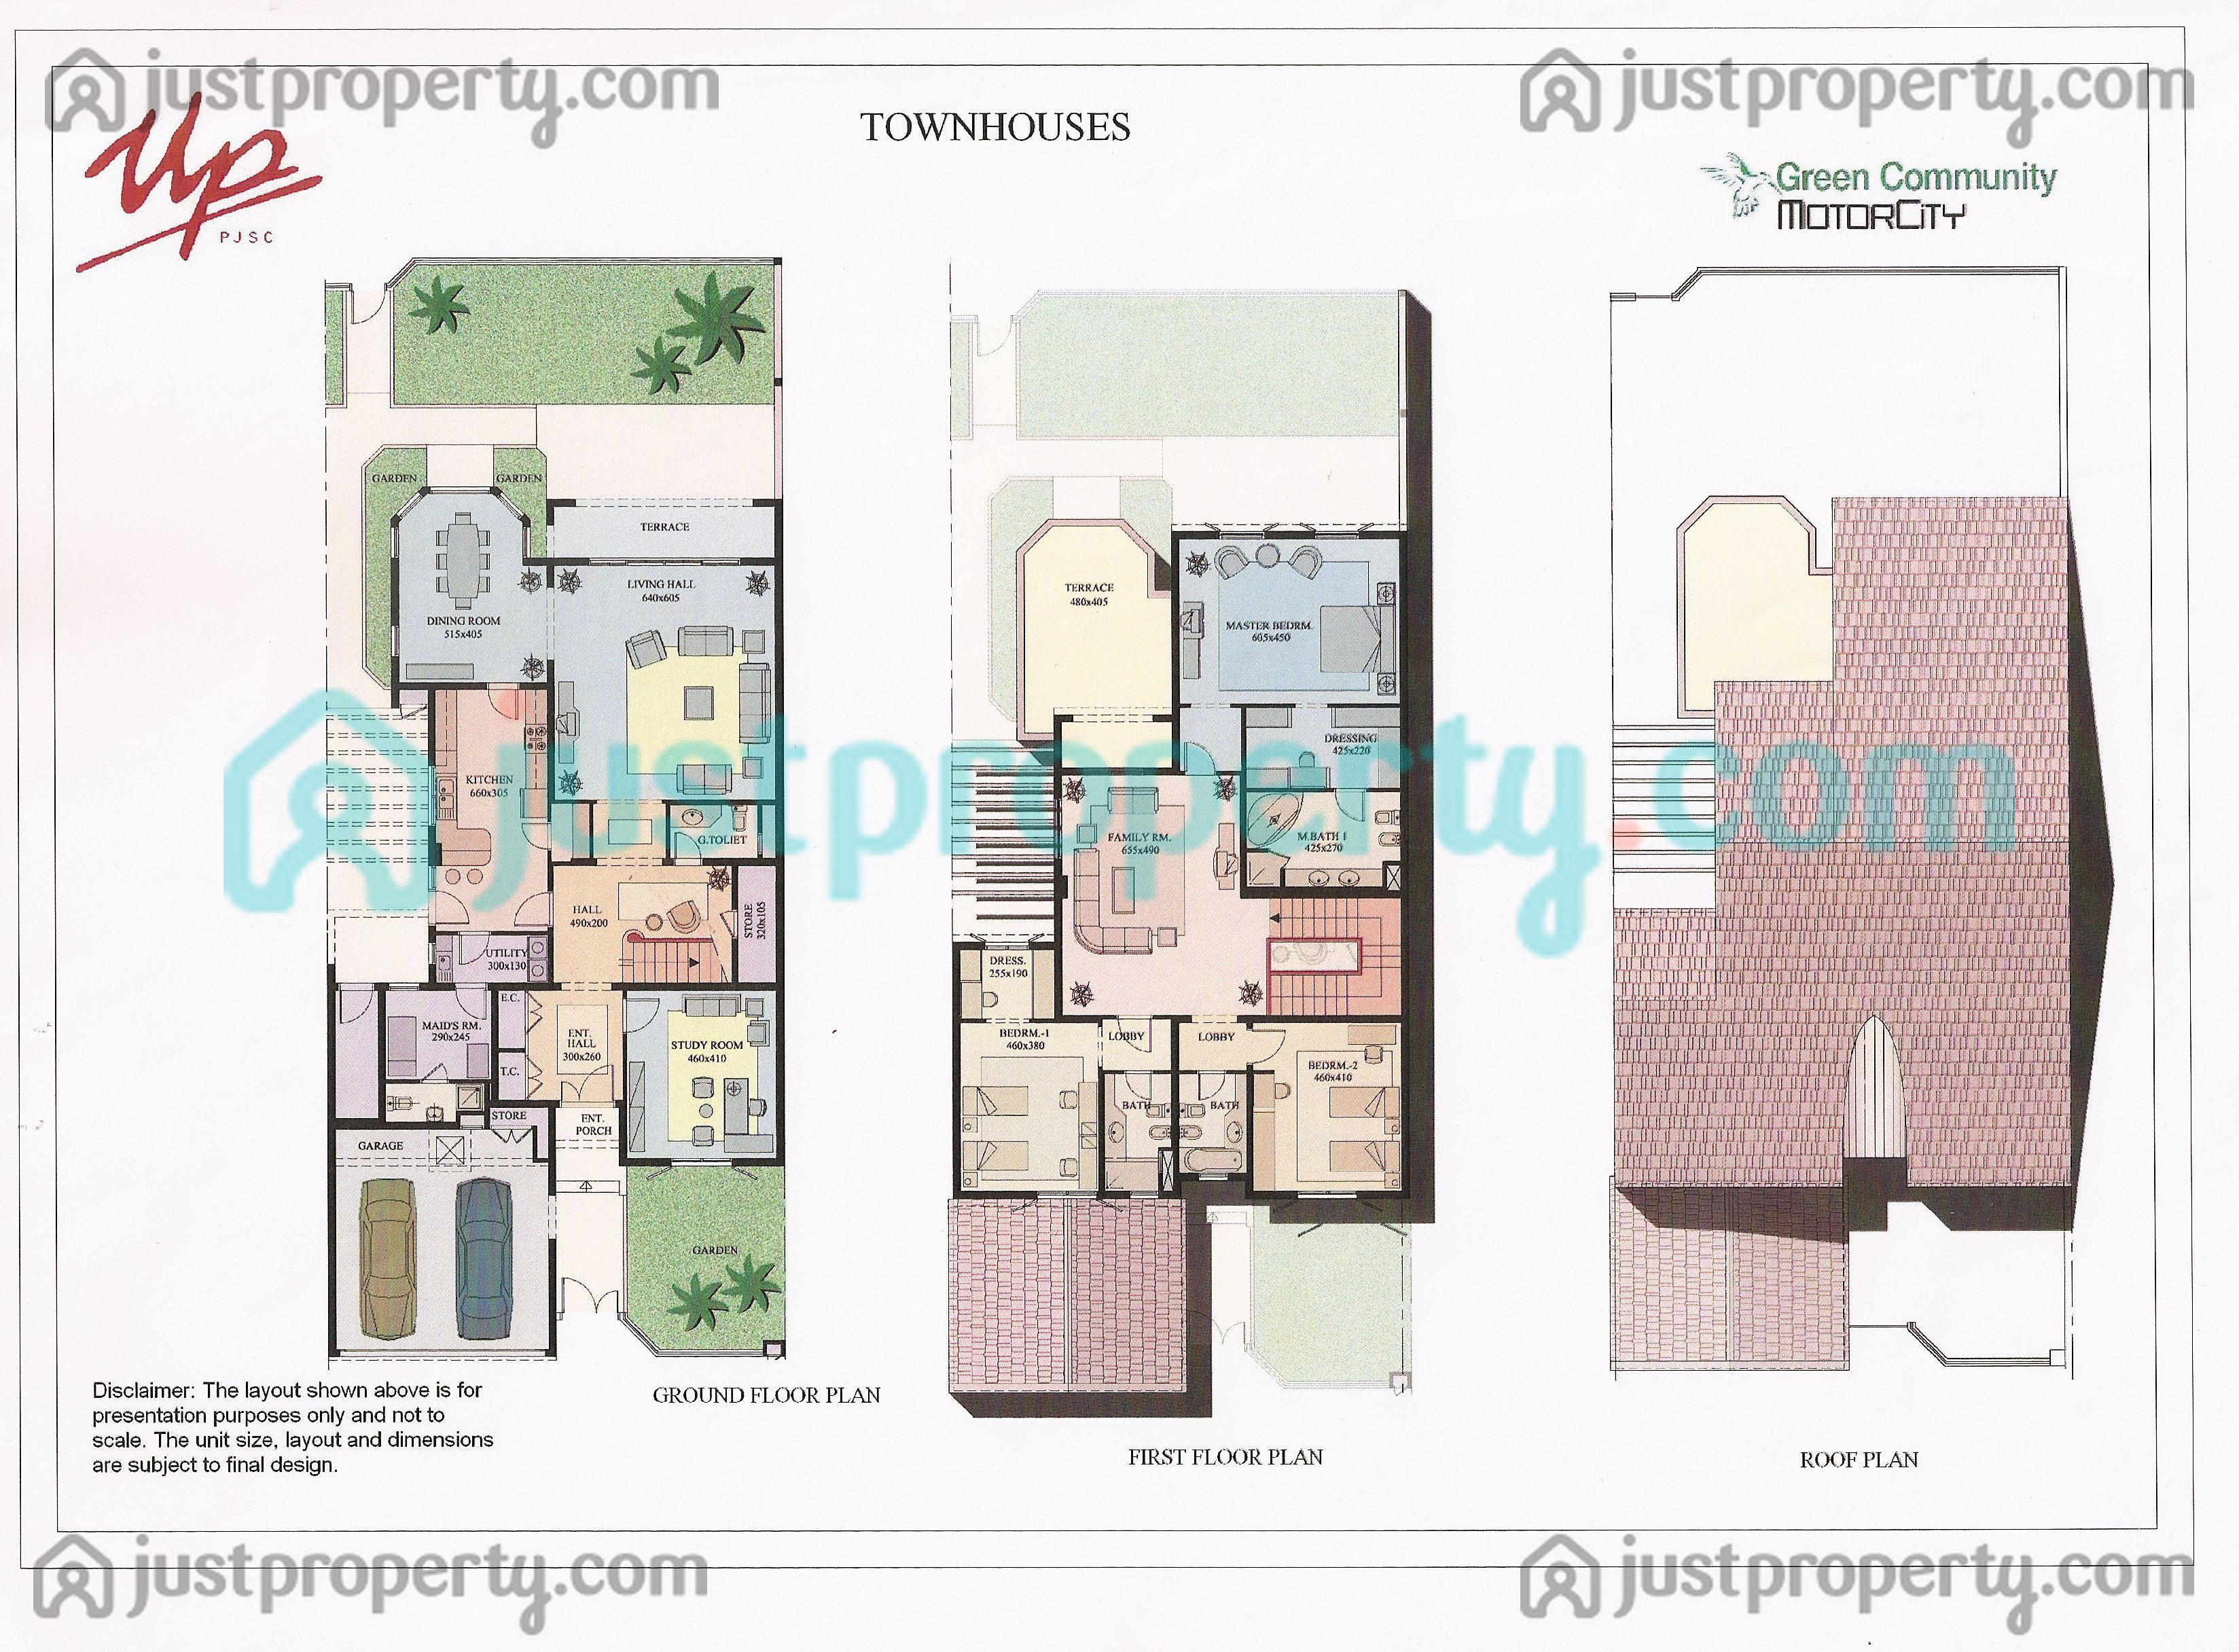 Floor plans for townhouses